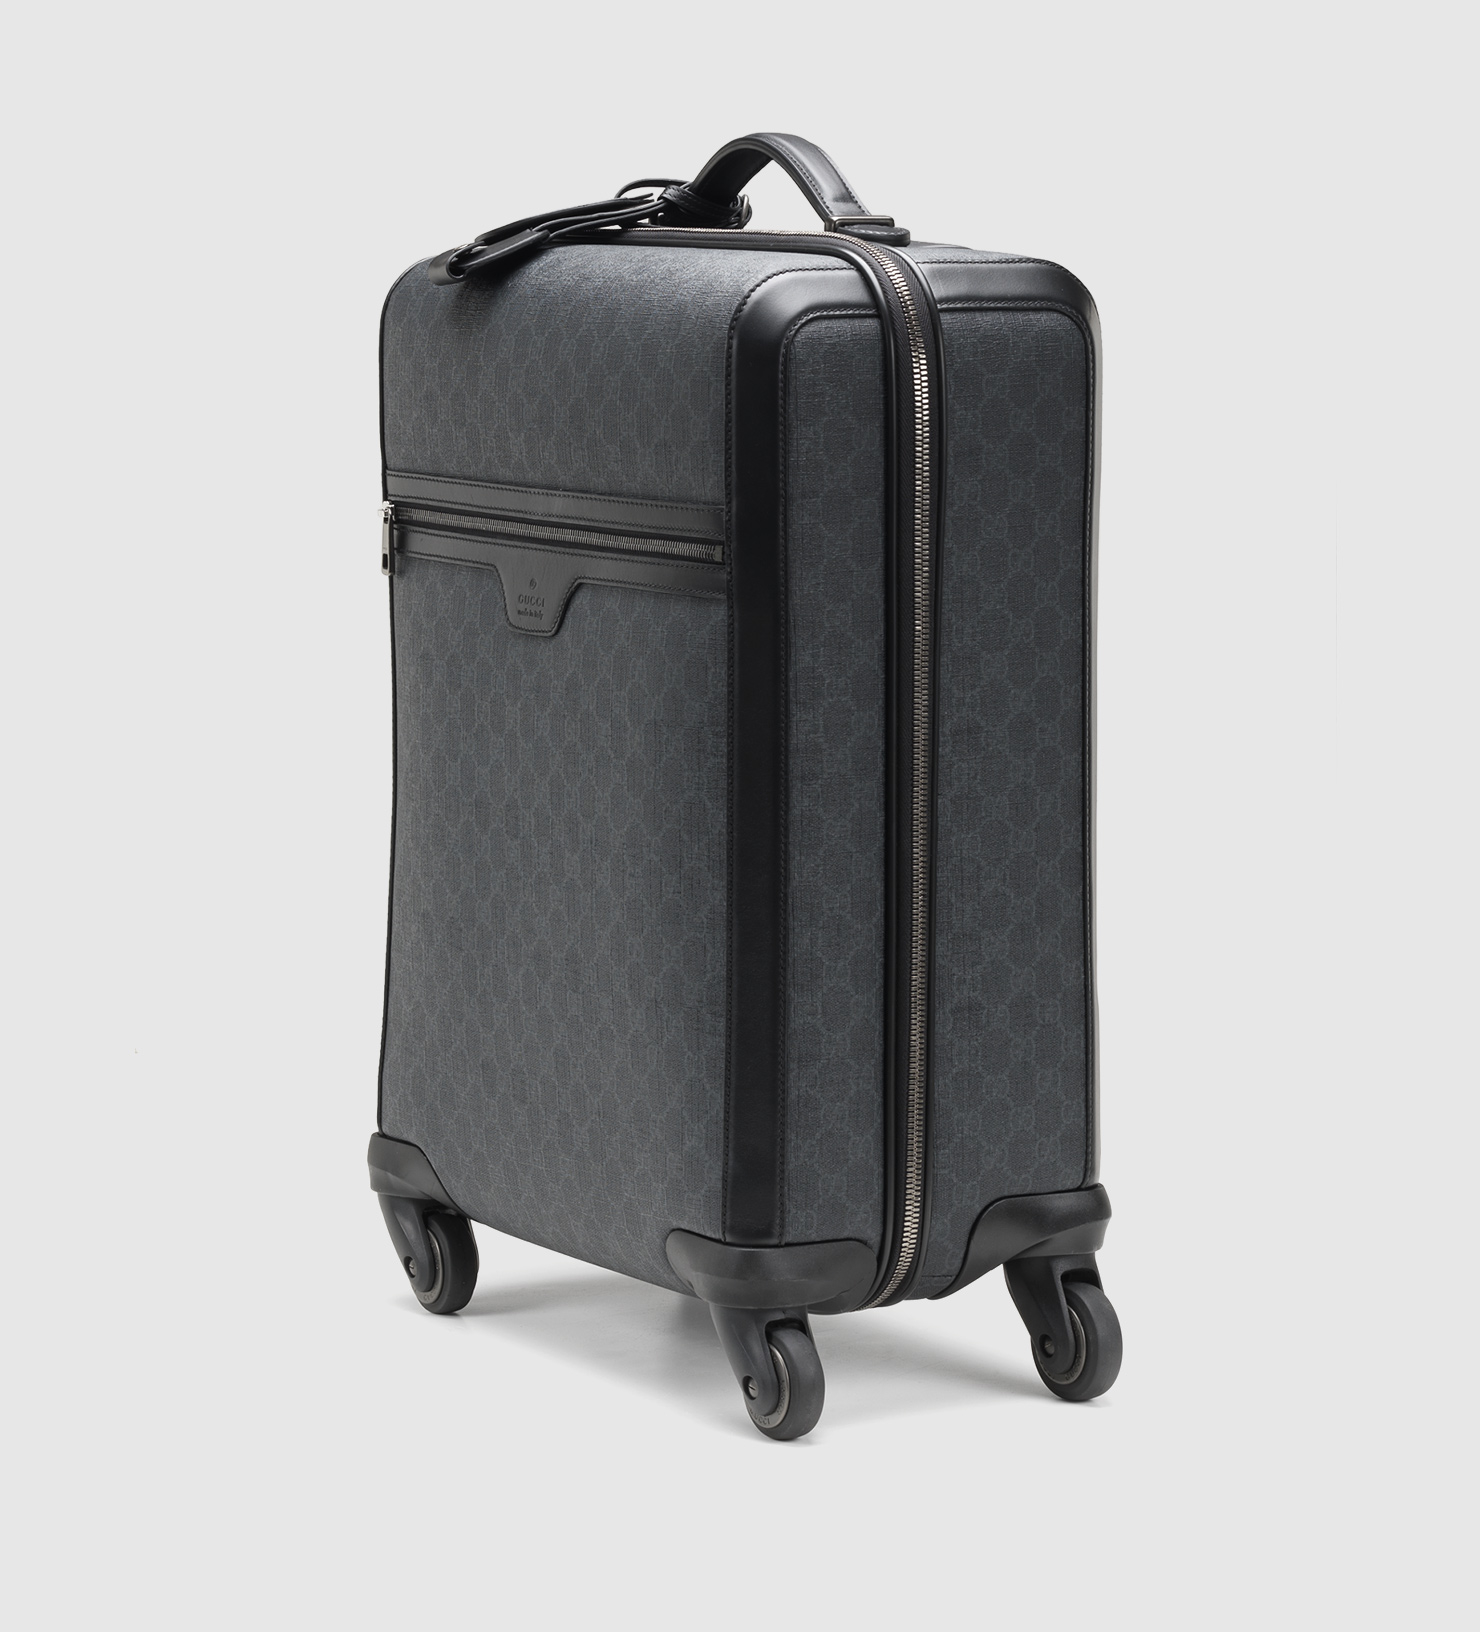 d1bca325e1e Lyst - Gucci Gg Supreme Canvas Wheeled Carry-on Suitcase in Black for Men